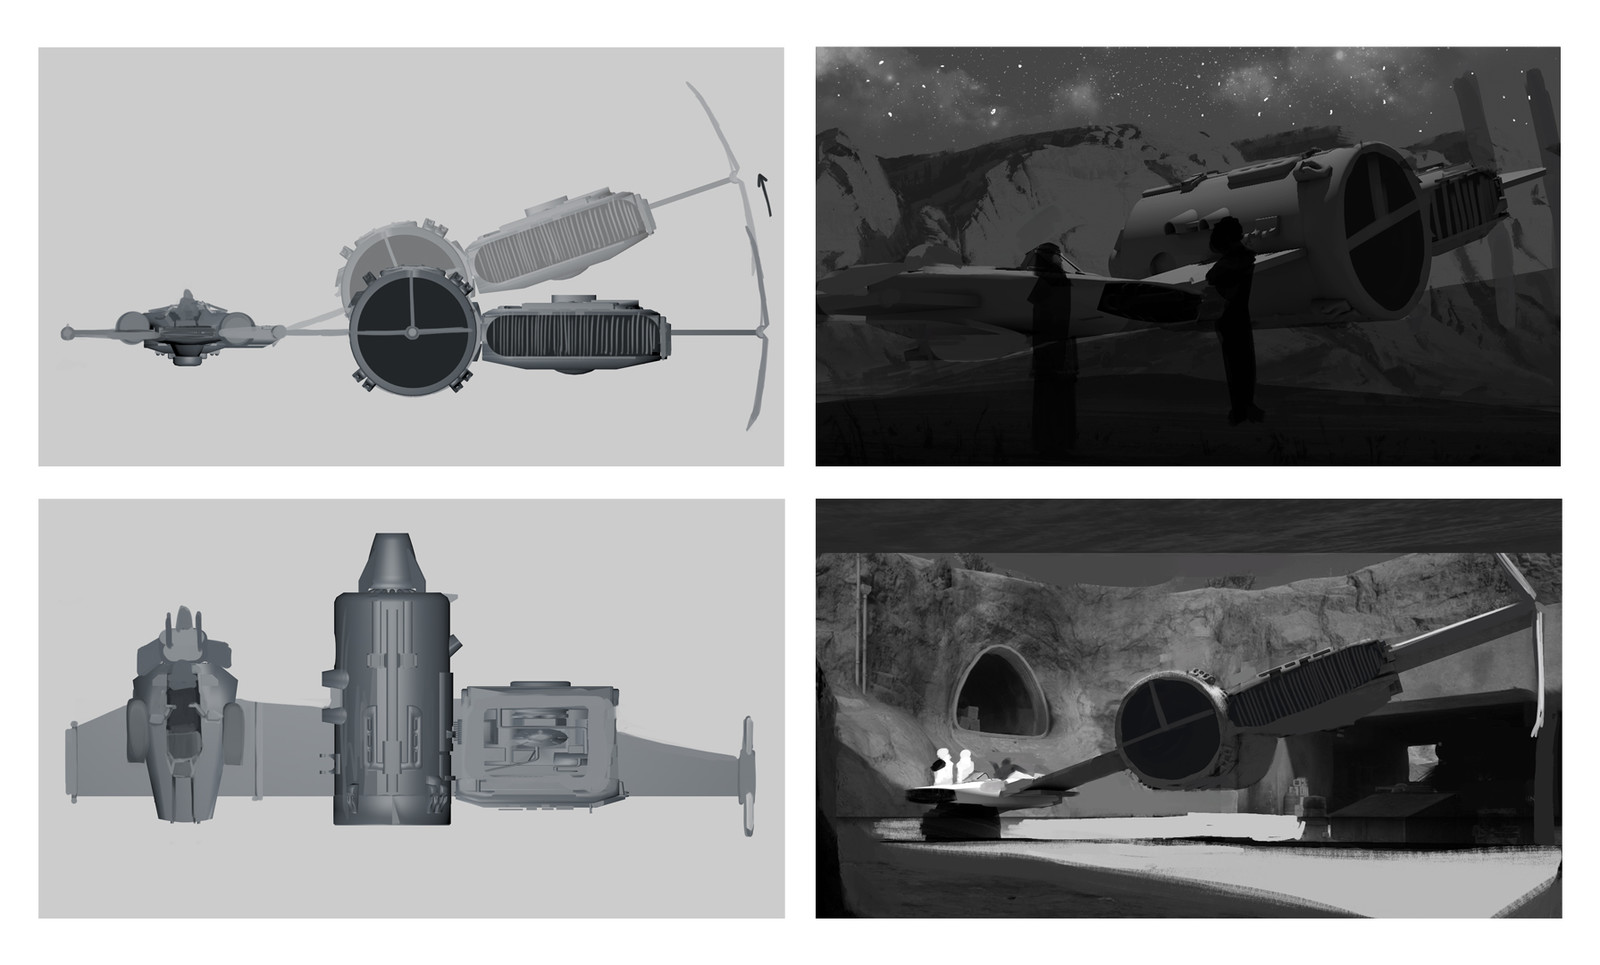 Rough views and compositions for the final image.